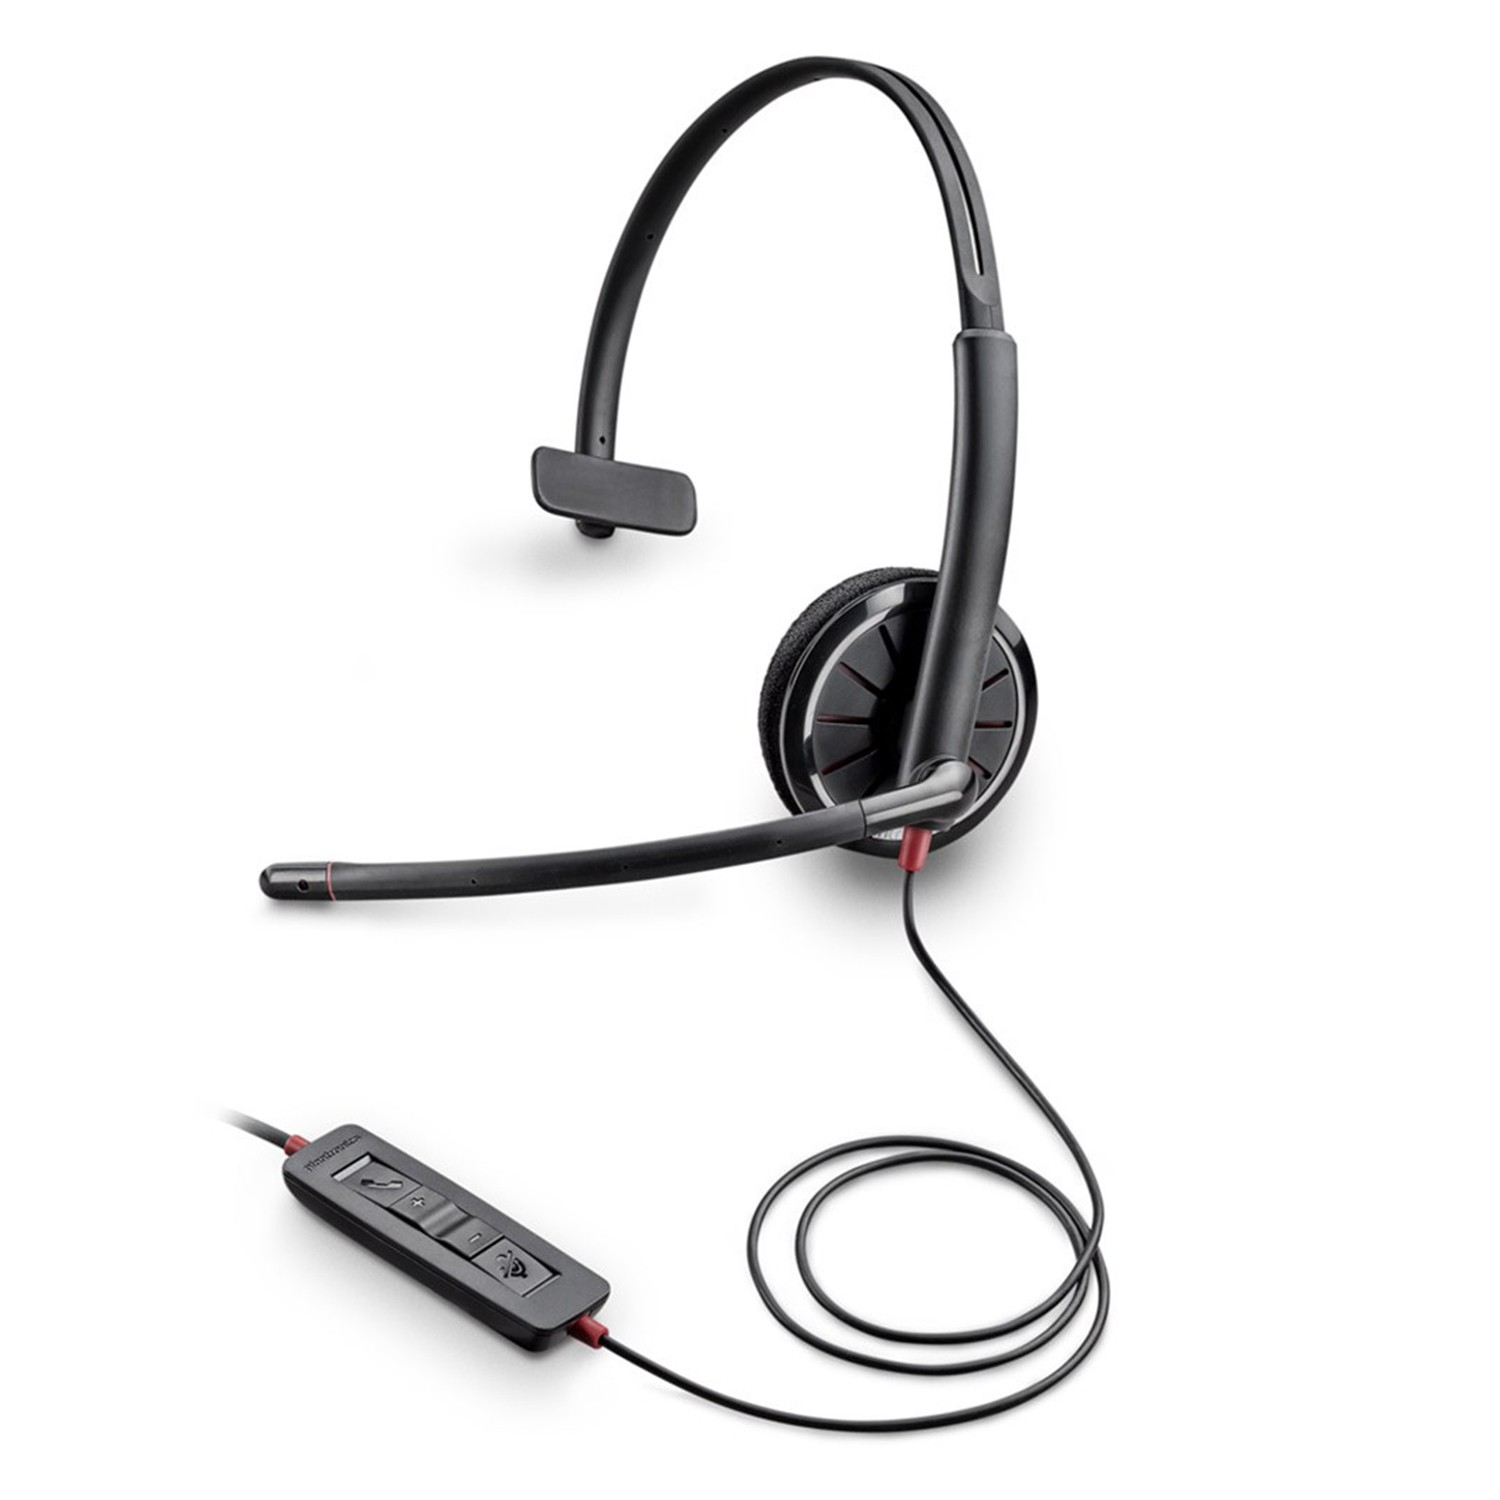 PLANTRONICS C310 M WINDOWS 8 X64 DRIVER DOWNLOAD